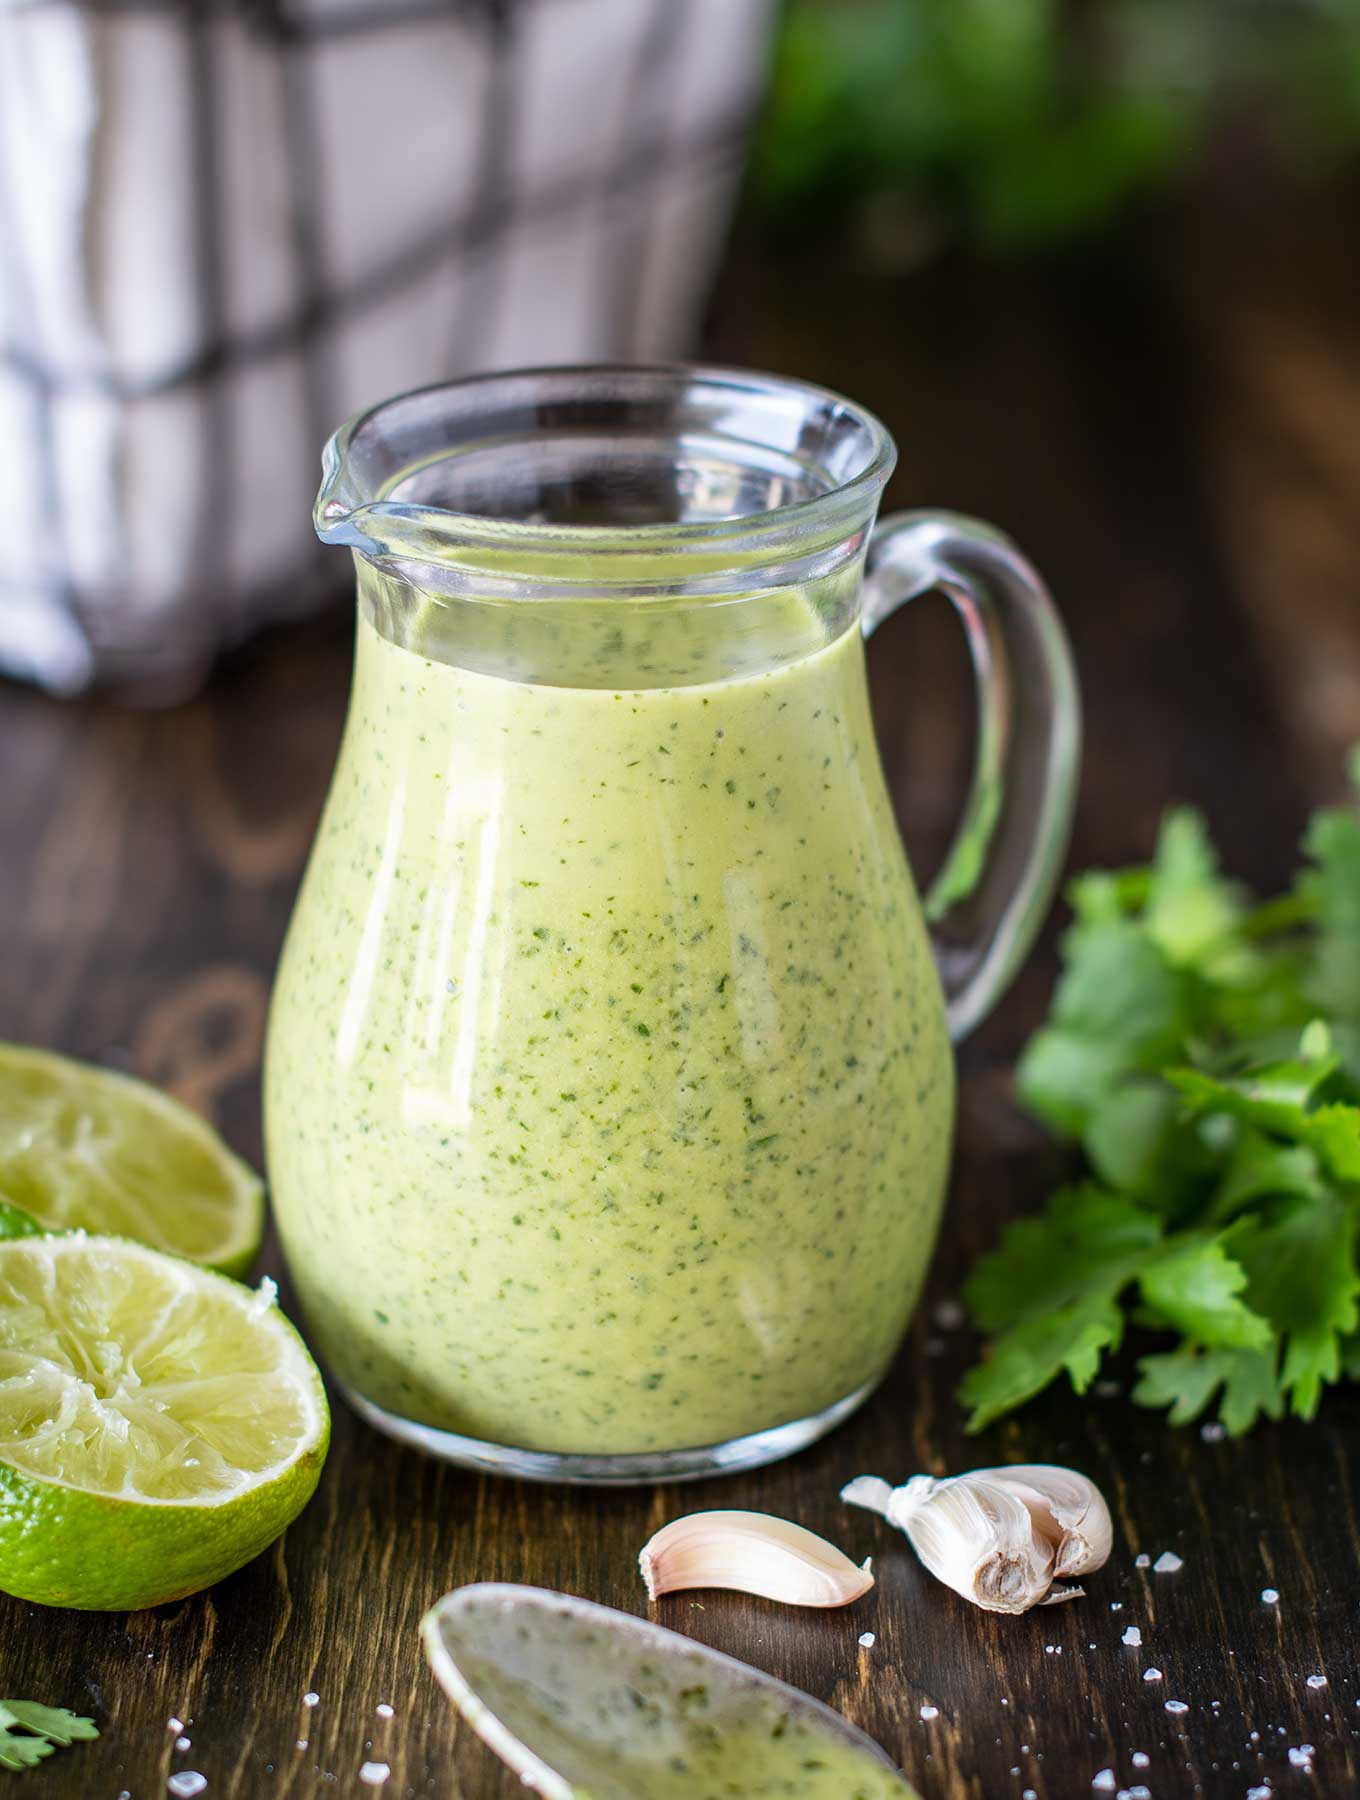 Mini pitcher of cilantro lime dressing